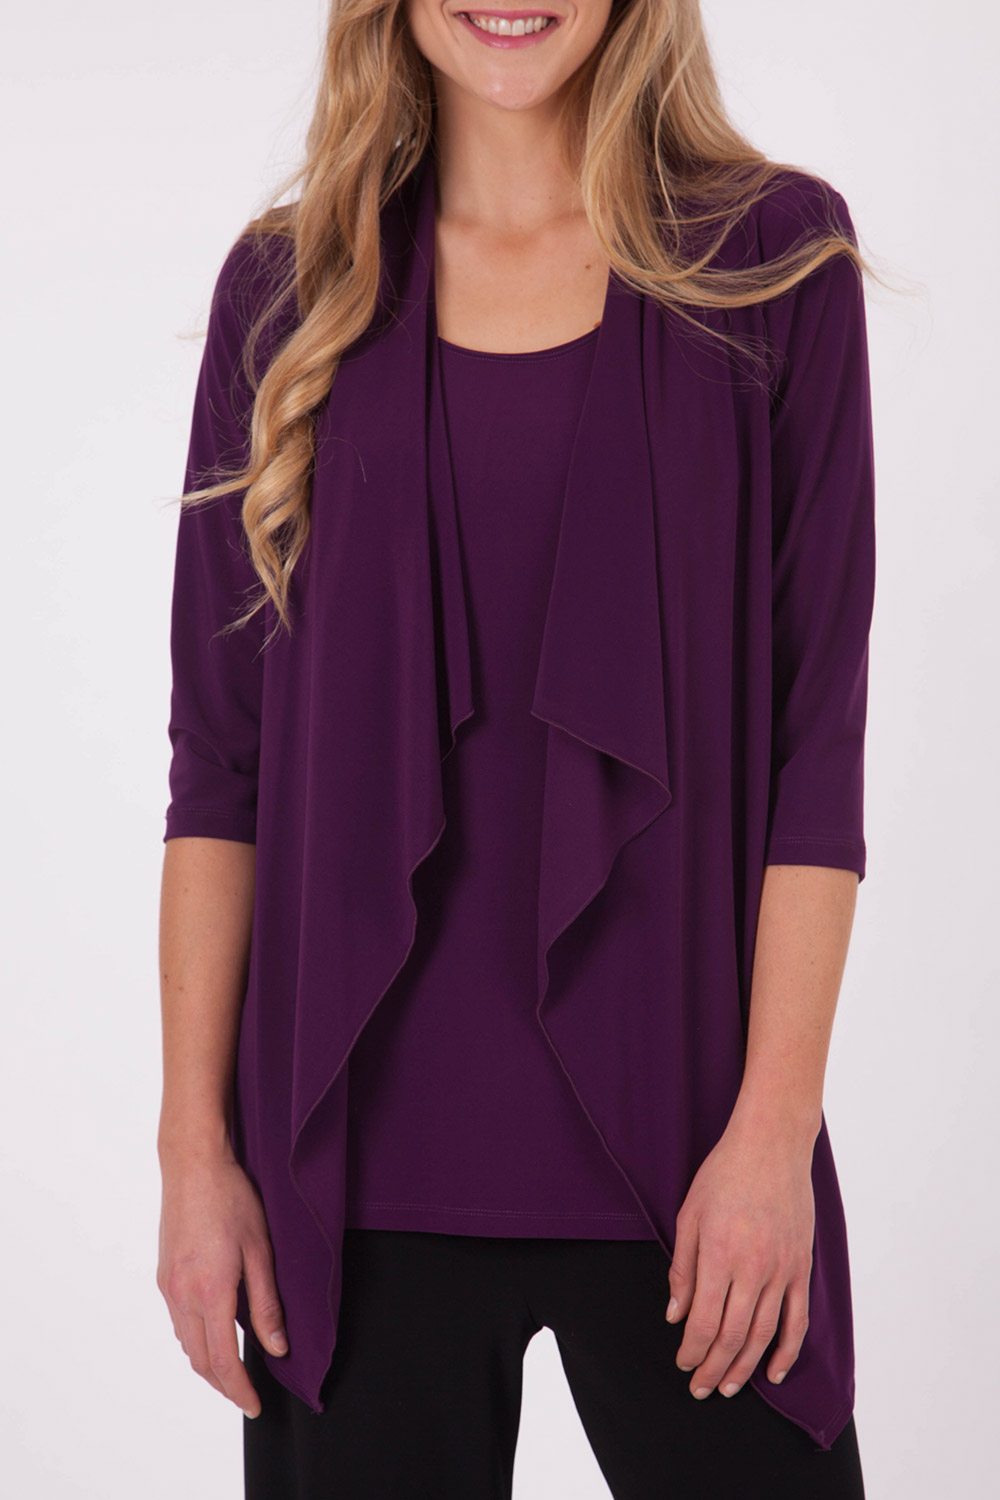 2 For 1 Cardi And Top